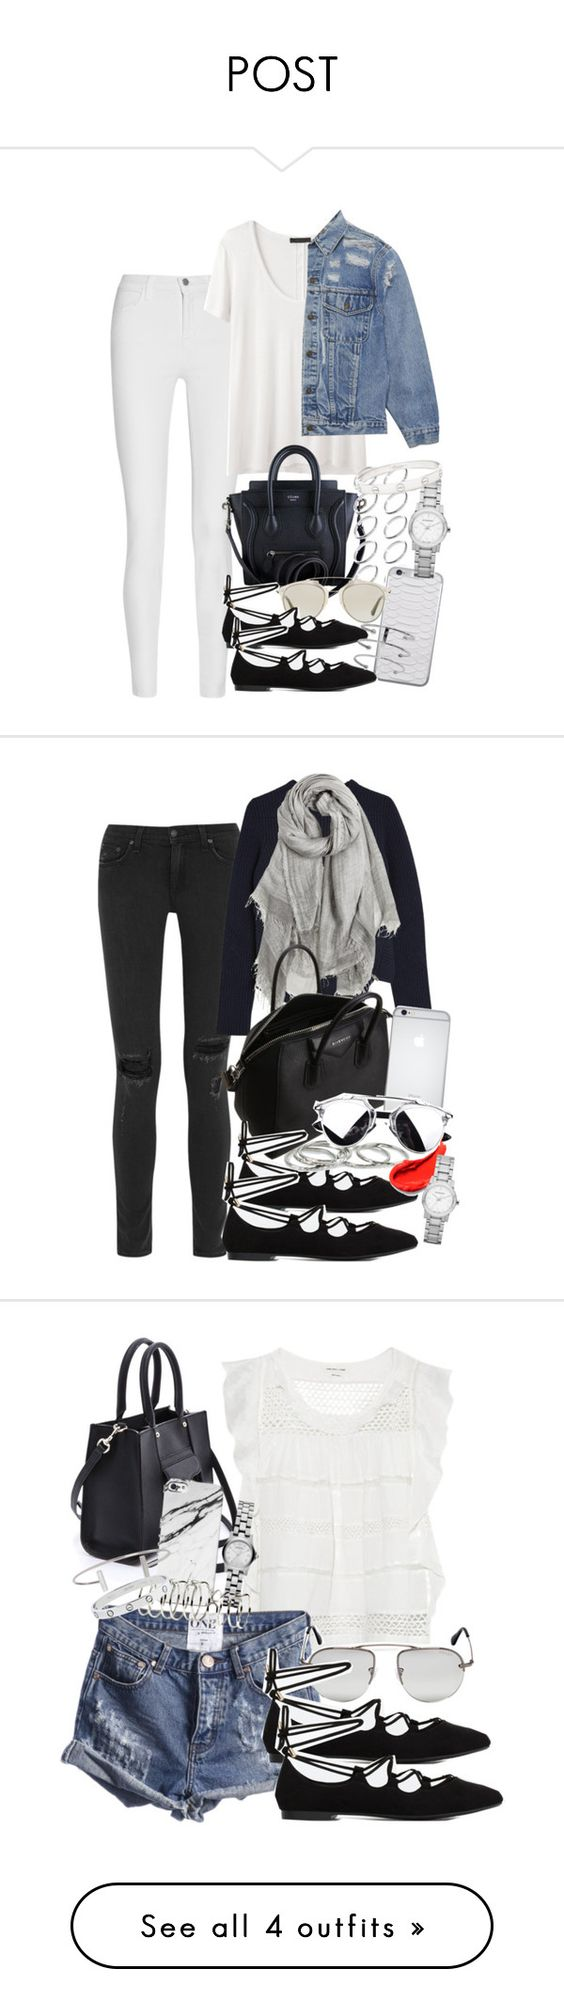 """""""POST"""" by mari-mmp ❤ liked on Polyvore"""